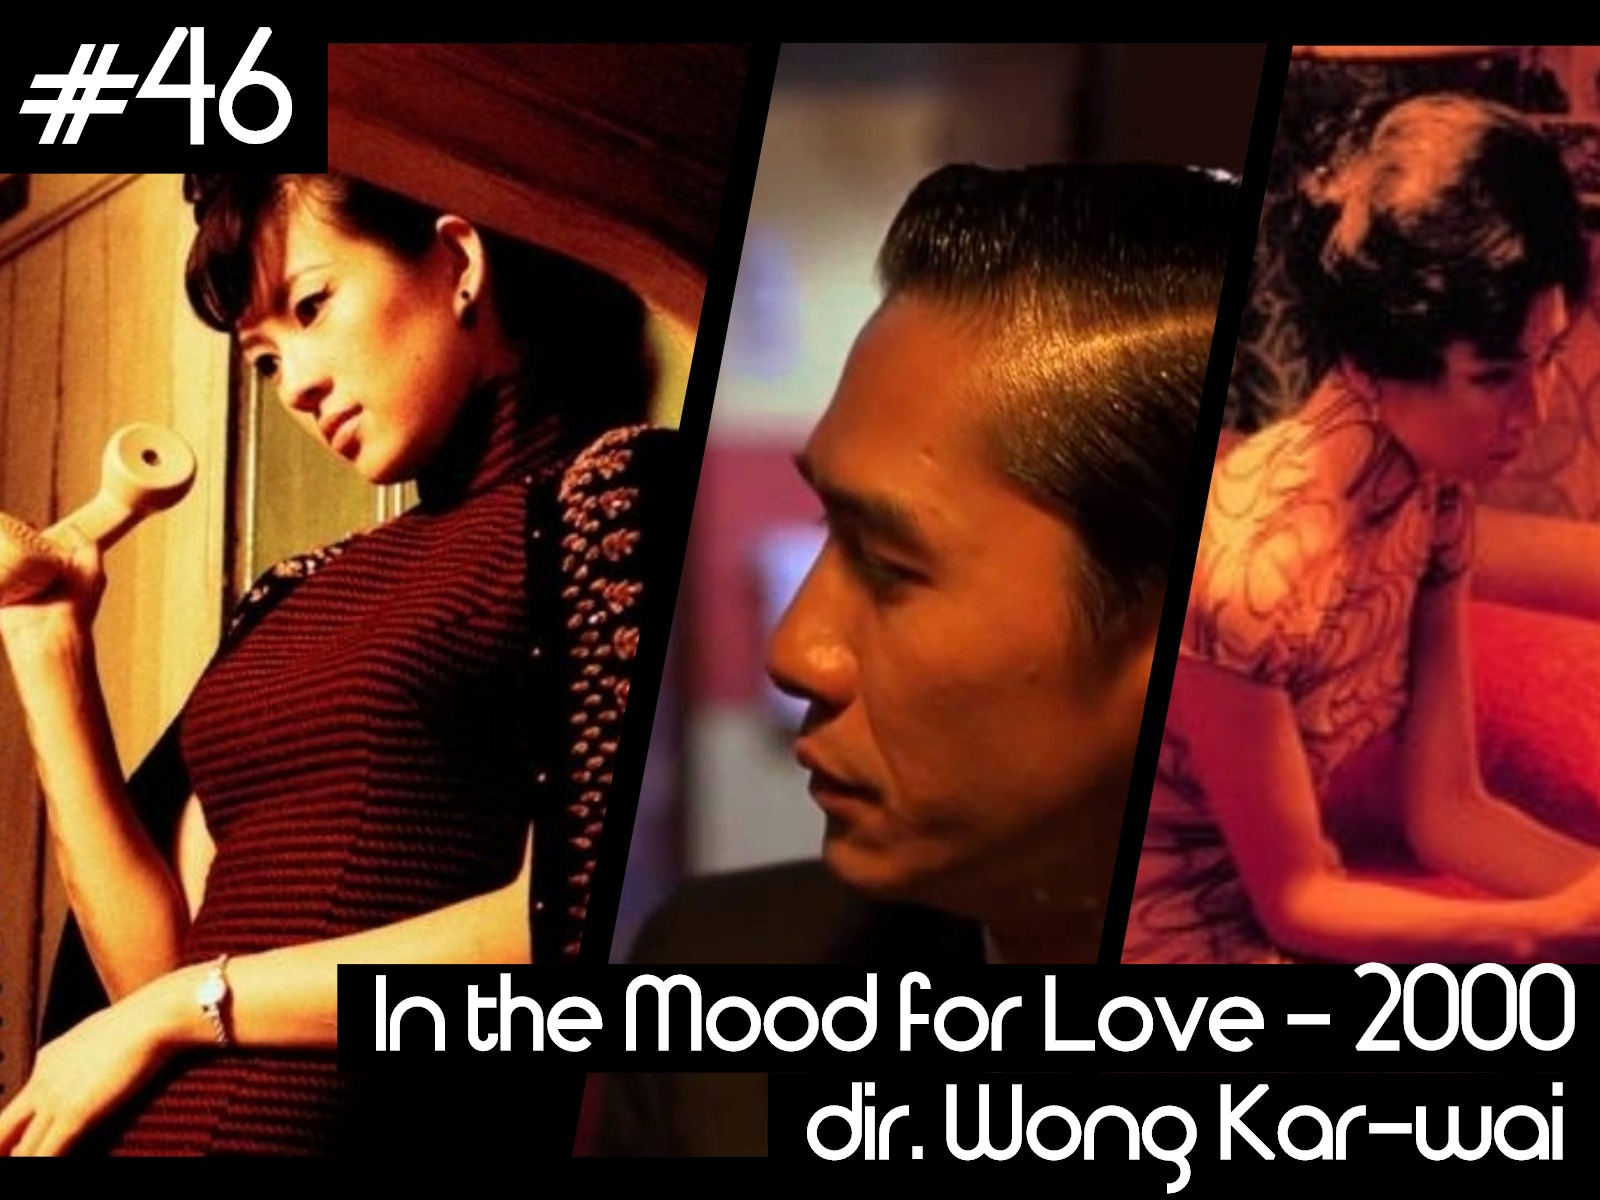 46 - in the mood for love.jpg